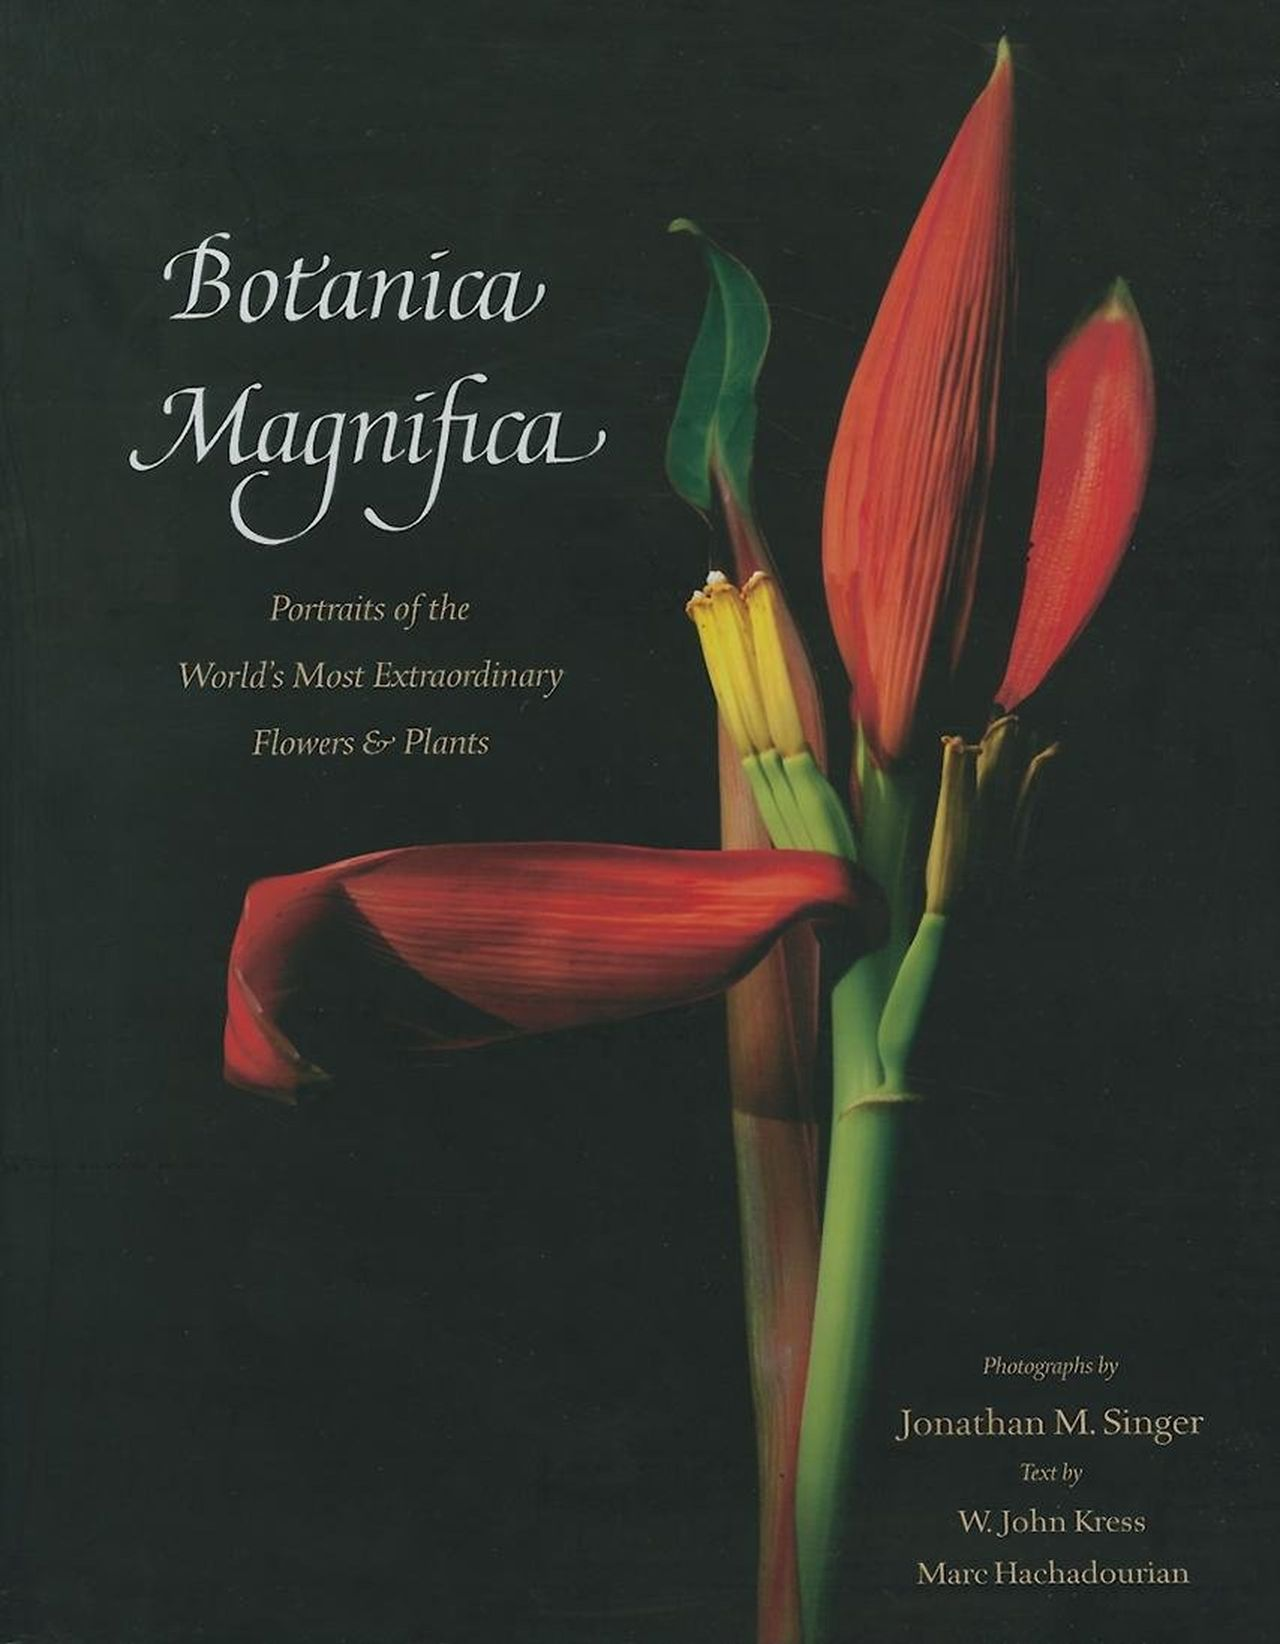 Botanica Magnifica by W. John Kress and Jonathan M. Singer